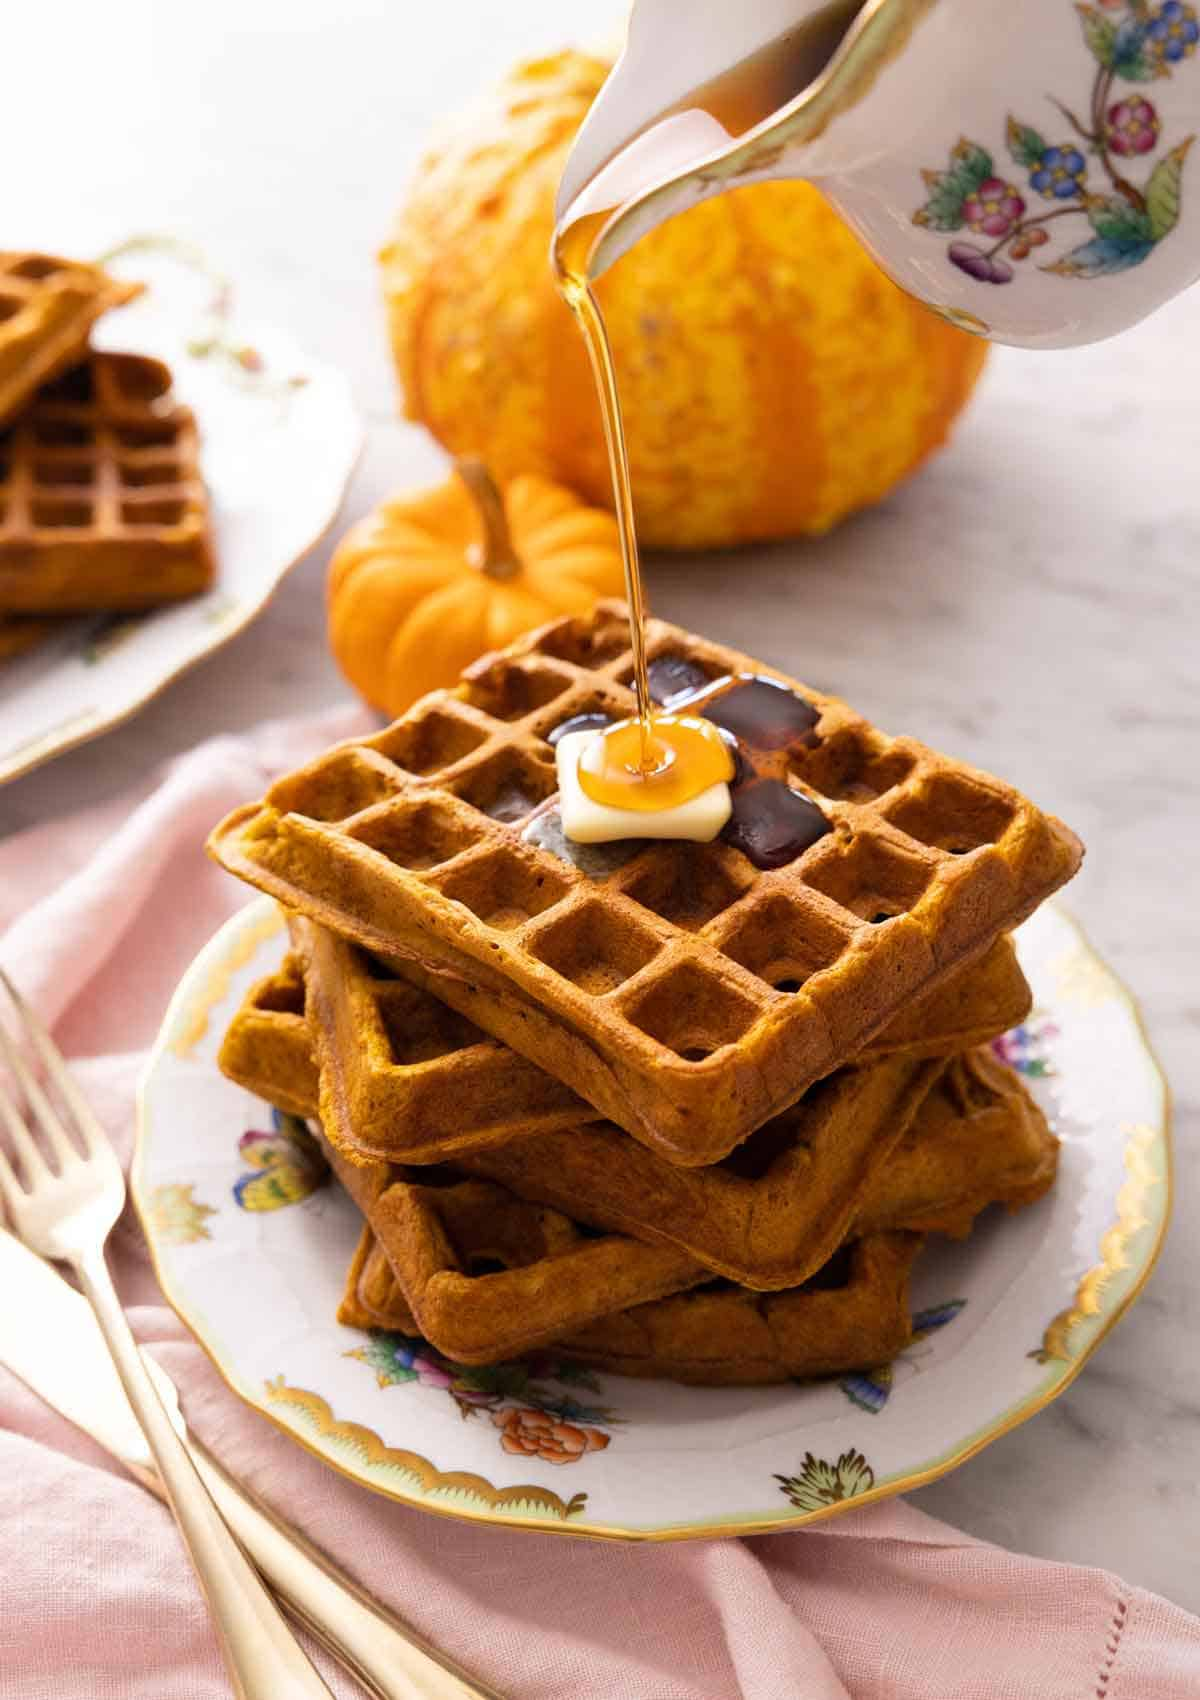 A plate with a stack of five pumpkin waffles with syrup poured on top.